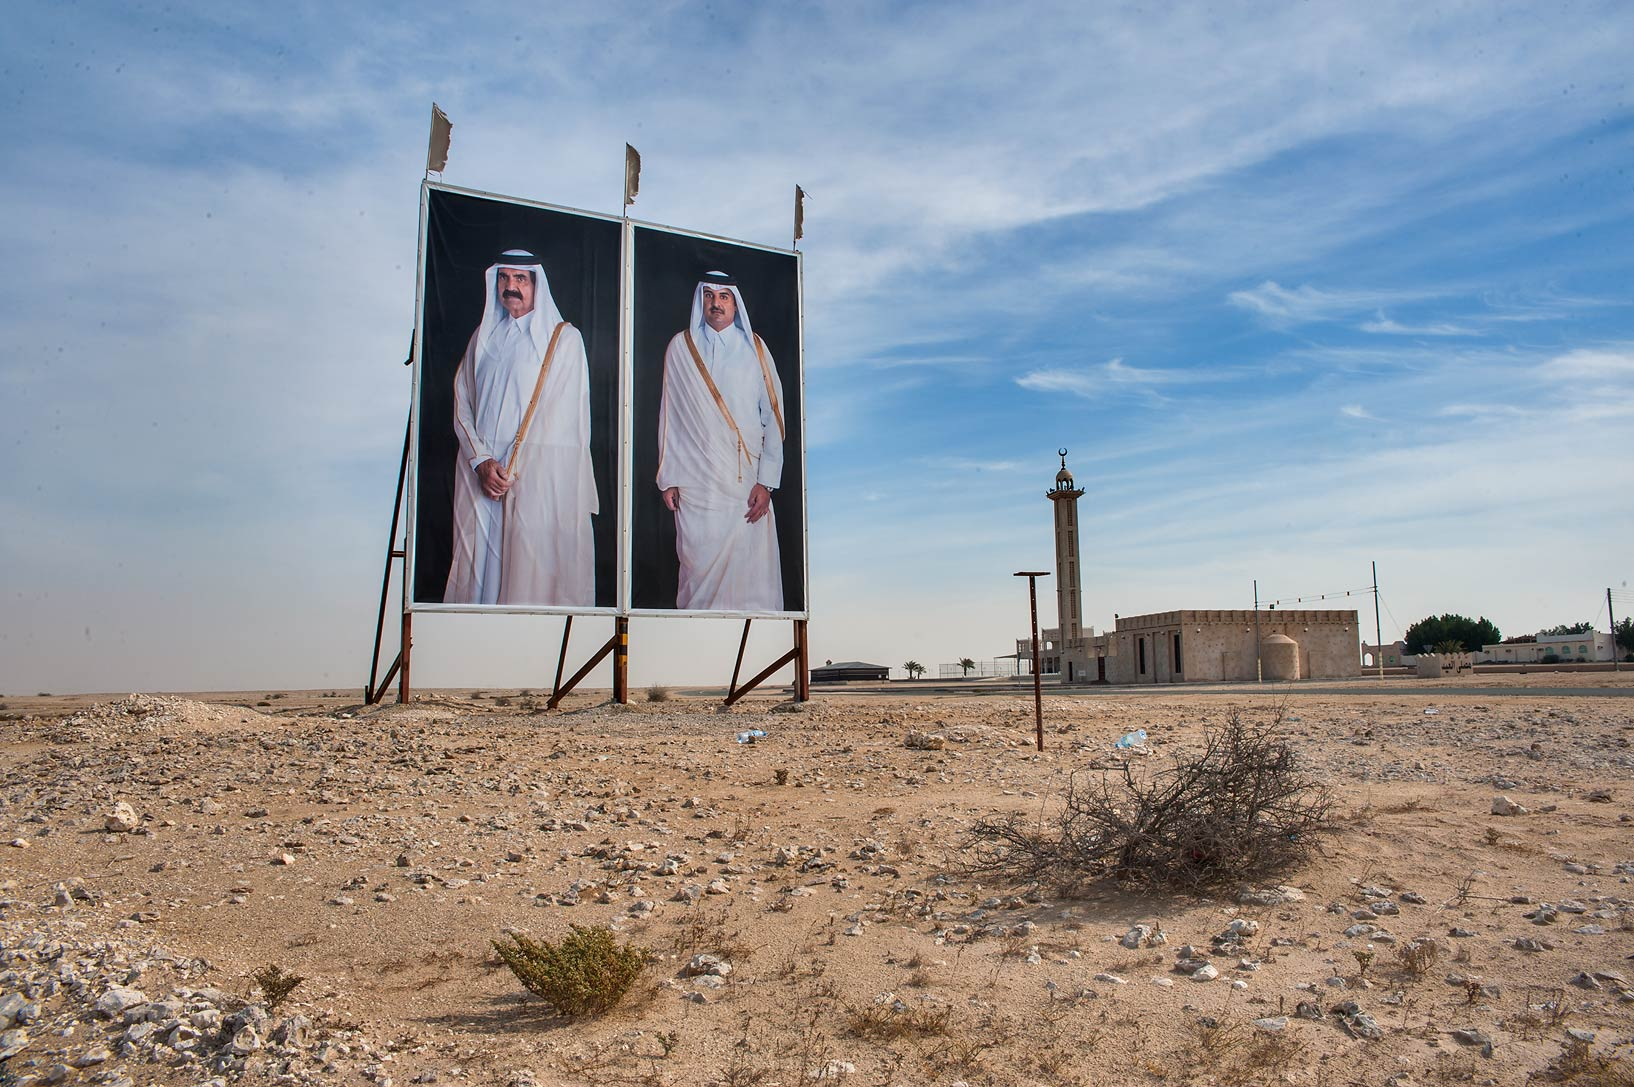 Portraits of emir Tamim and his father Hamad bin...of Abu Sidra in north-western Qatar